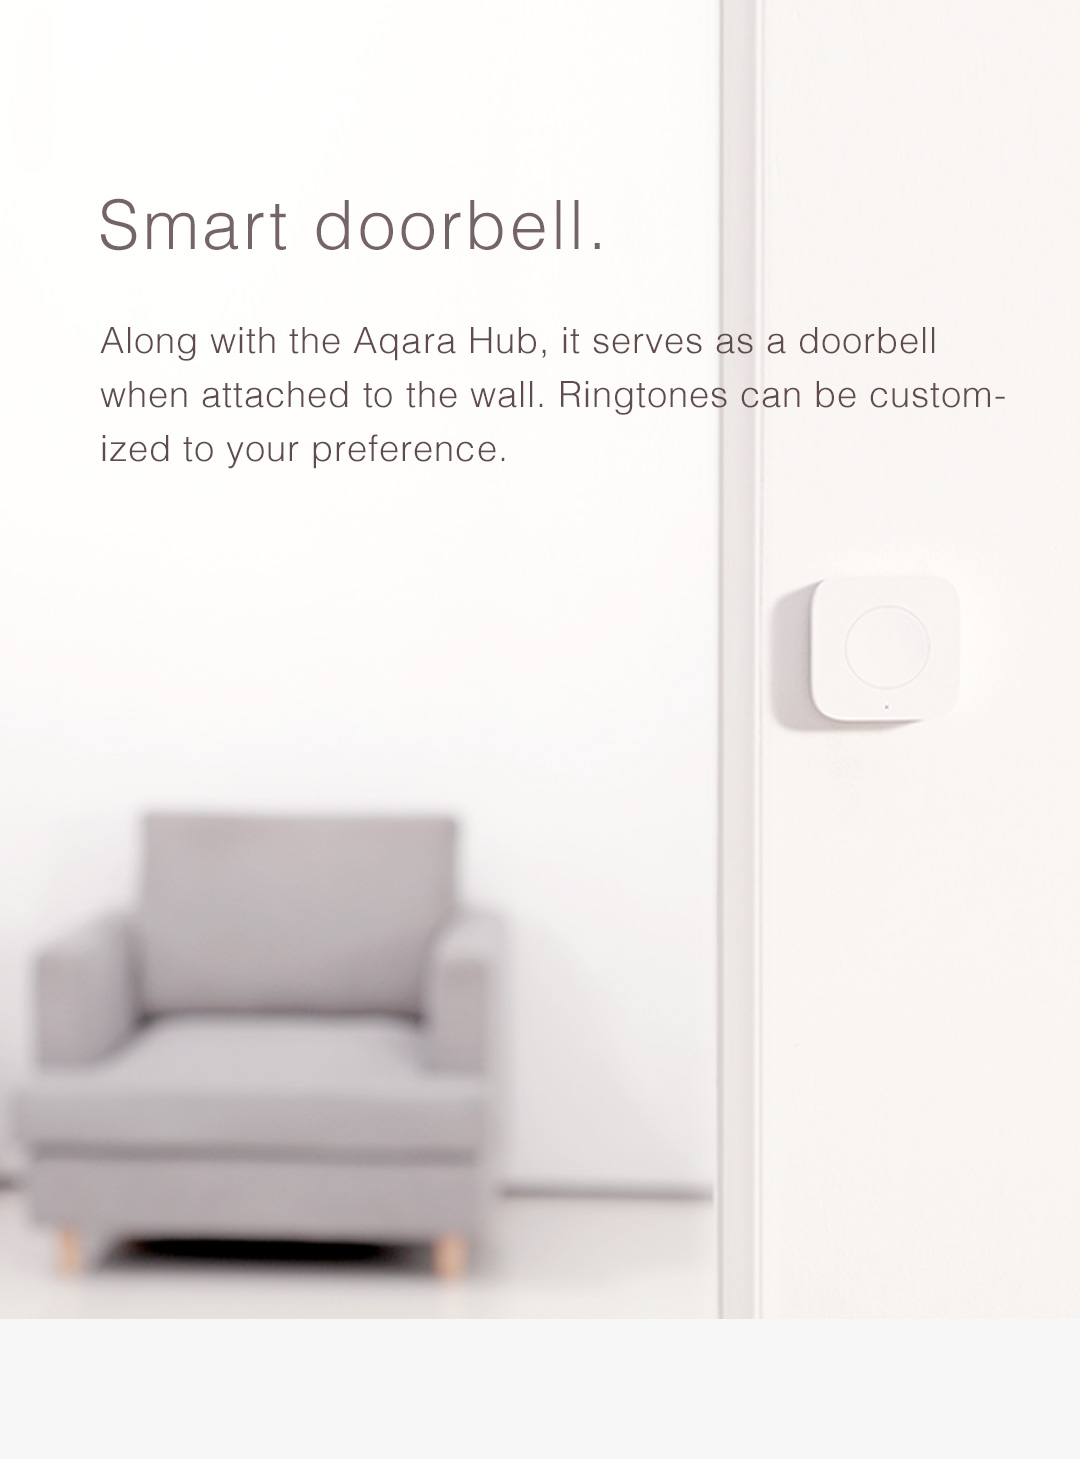 wireless remote switch can serve as a doorbell with Aqara hub